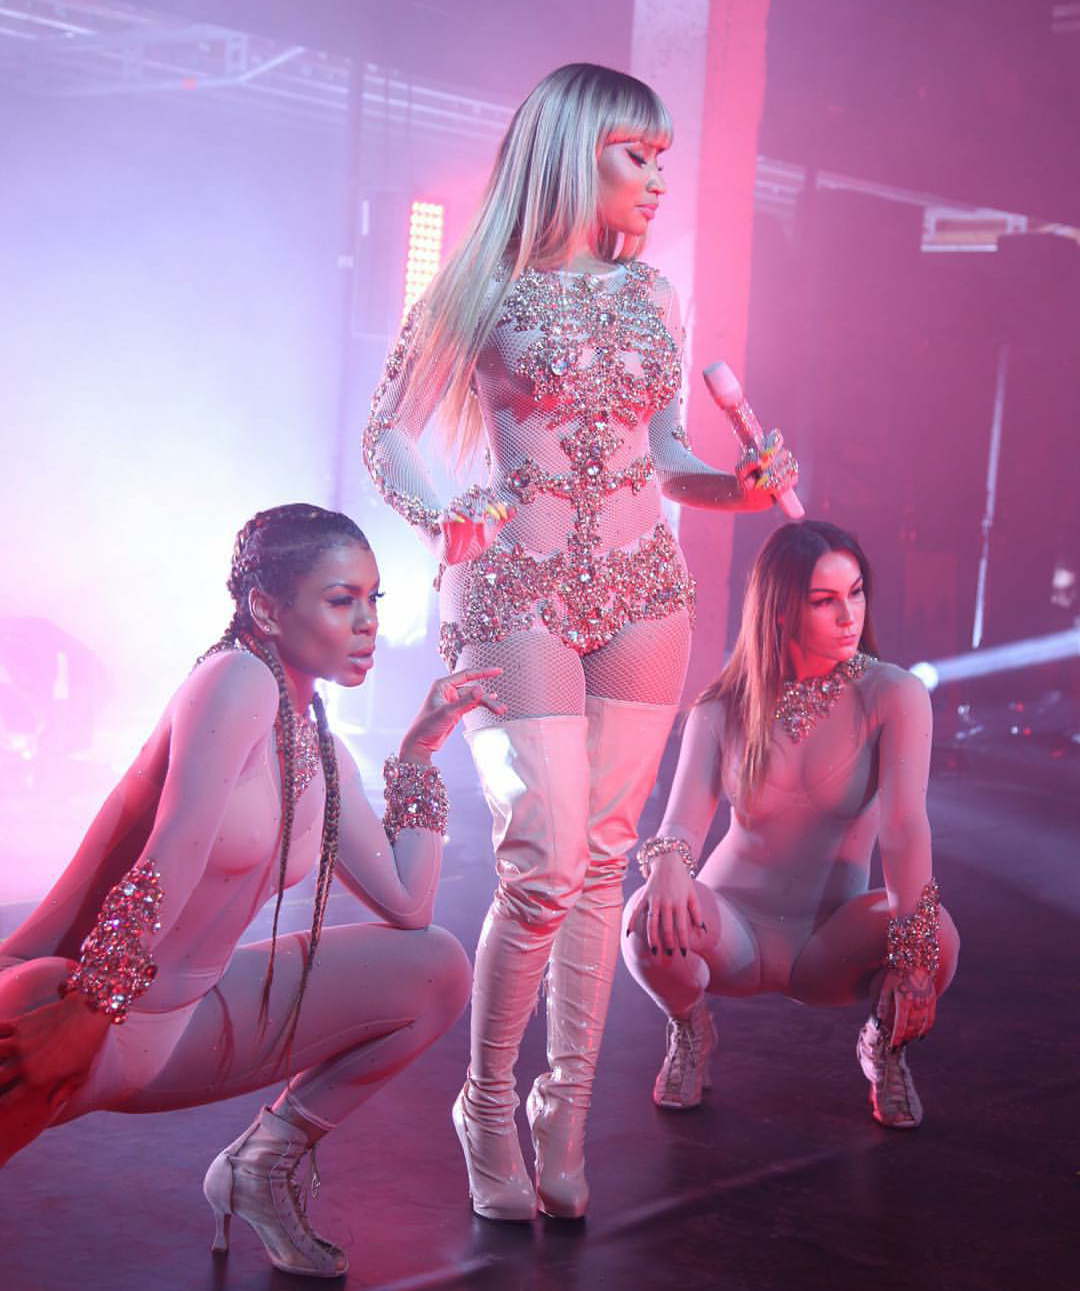 minaj nicki catsuit super givenchy performed italy boots concert 12naija photoshoots welcome rapper rocked really looks sweet had cut